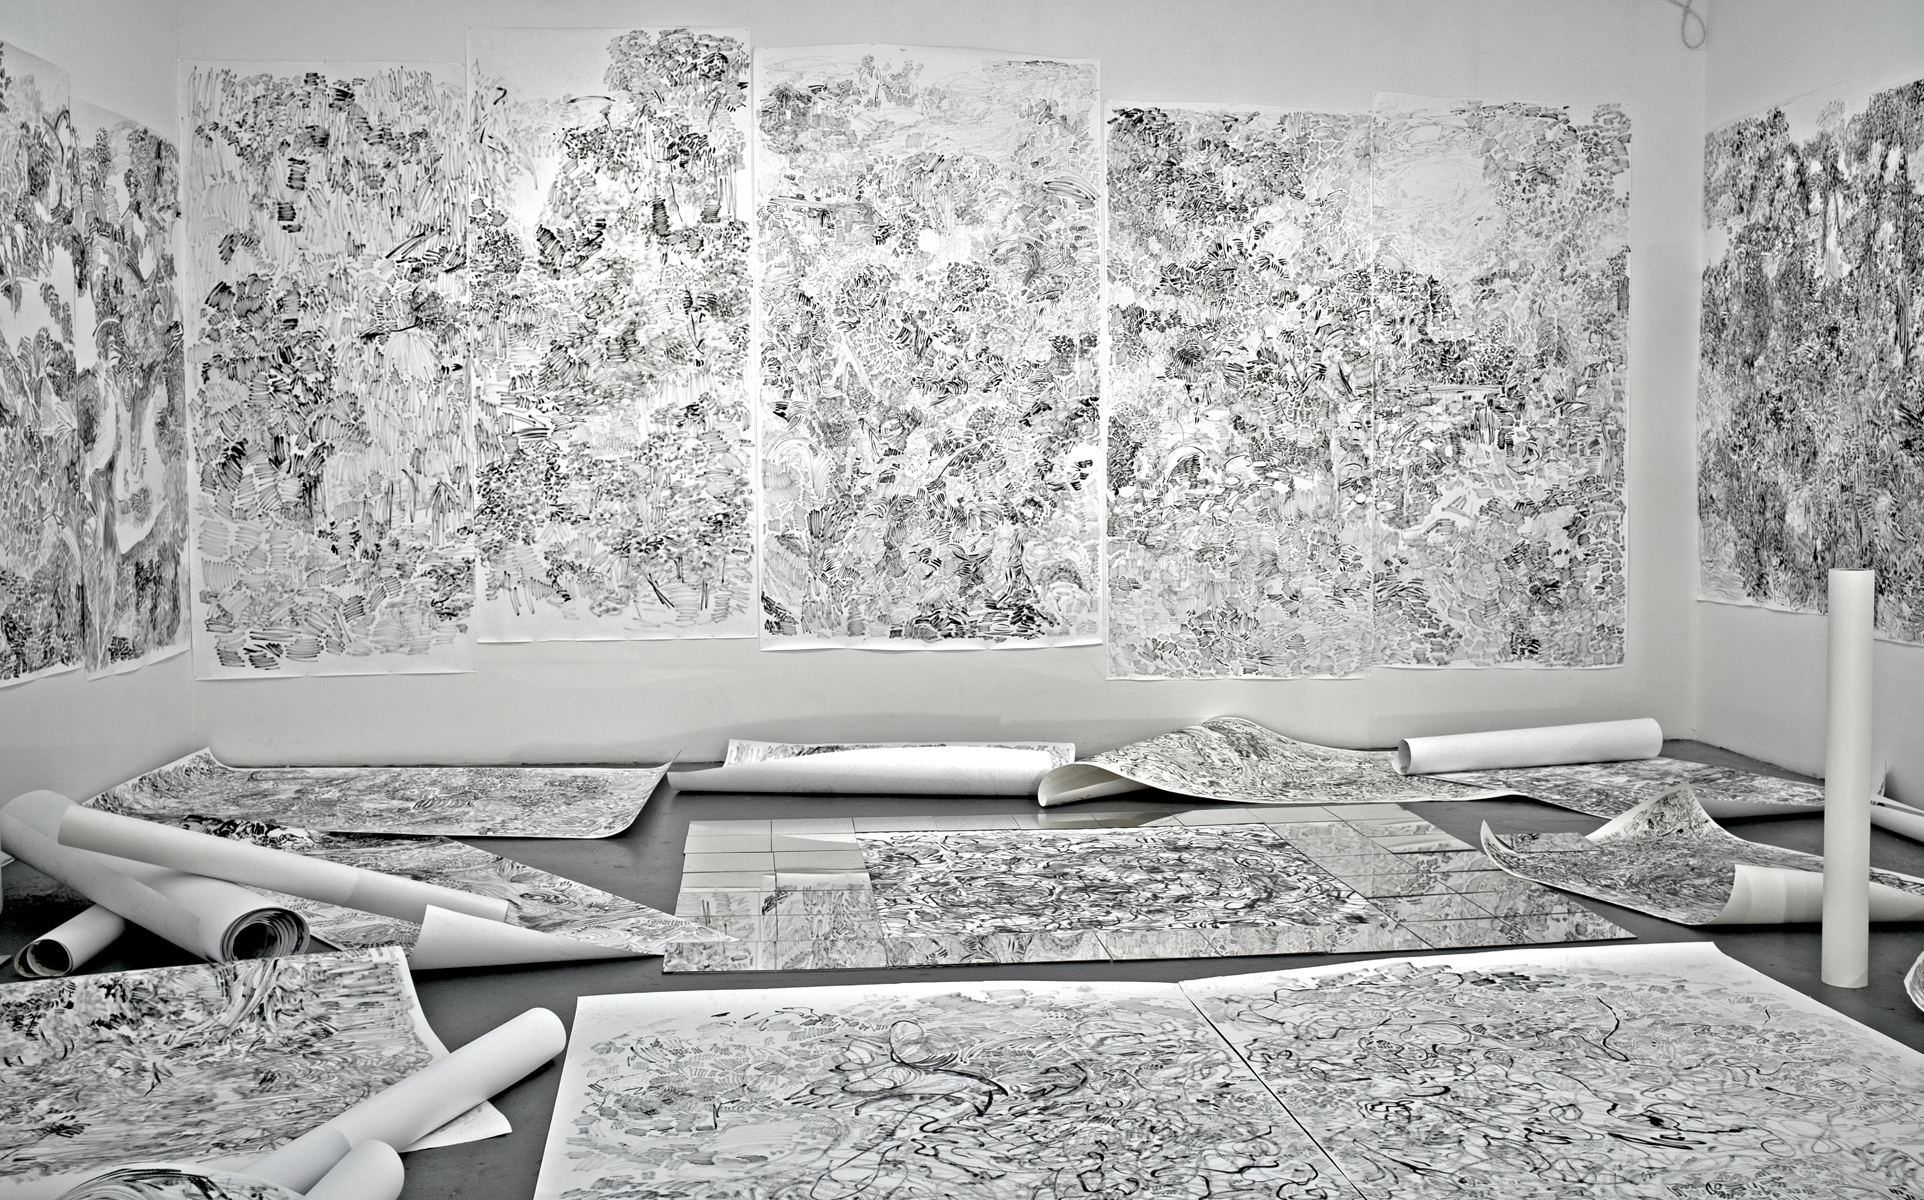 "(From left to right)  I.The Hidden Dimension and Other observations No.112(left wall), Ink on paper, 100""x96""  II.The Hidden Dimension and Other observations No.156 (left two panel on the front wall), Ink on paper, 96""x105""  III.The Hidden Dimension and Other observations No.157 (Middle one panel on the front wall), Ink on paper, 60""x101""  IV.The Hidden Dimension and Other observations No.150 (right two panel on the front wall), Ink on paper, 96""x100""  V.The Hidden Dimension and Other observations No.102 ( the right wall), Ink on paper, 96""x85"""